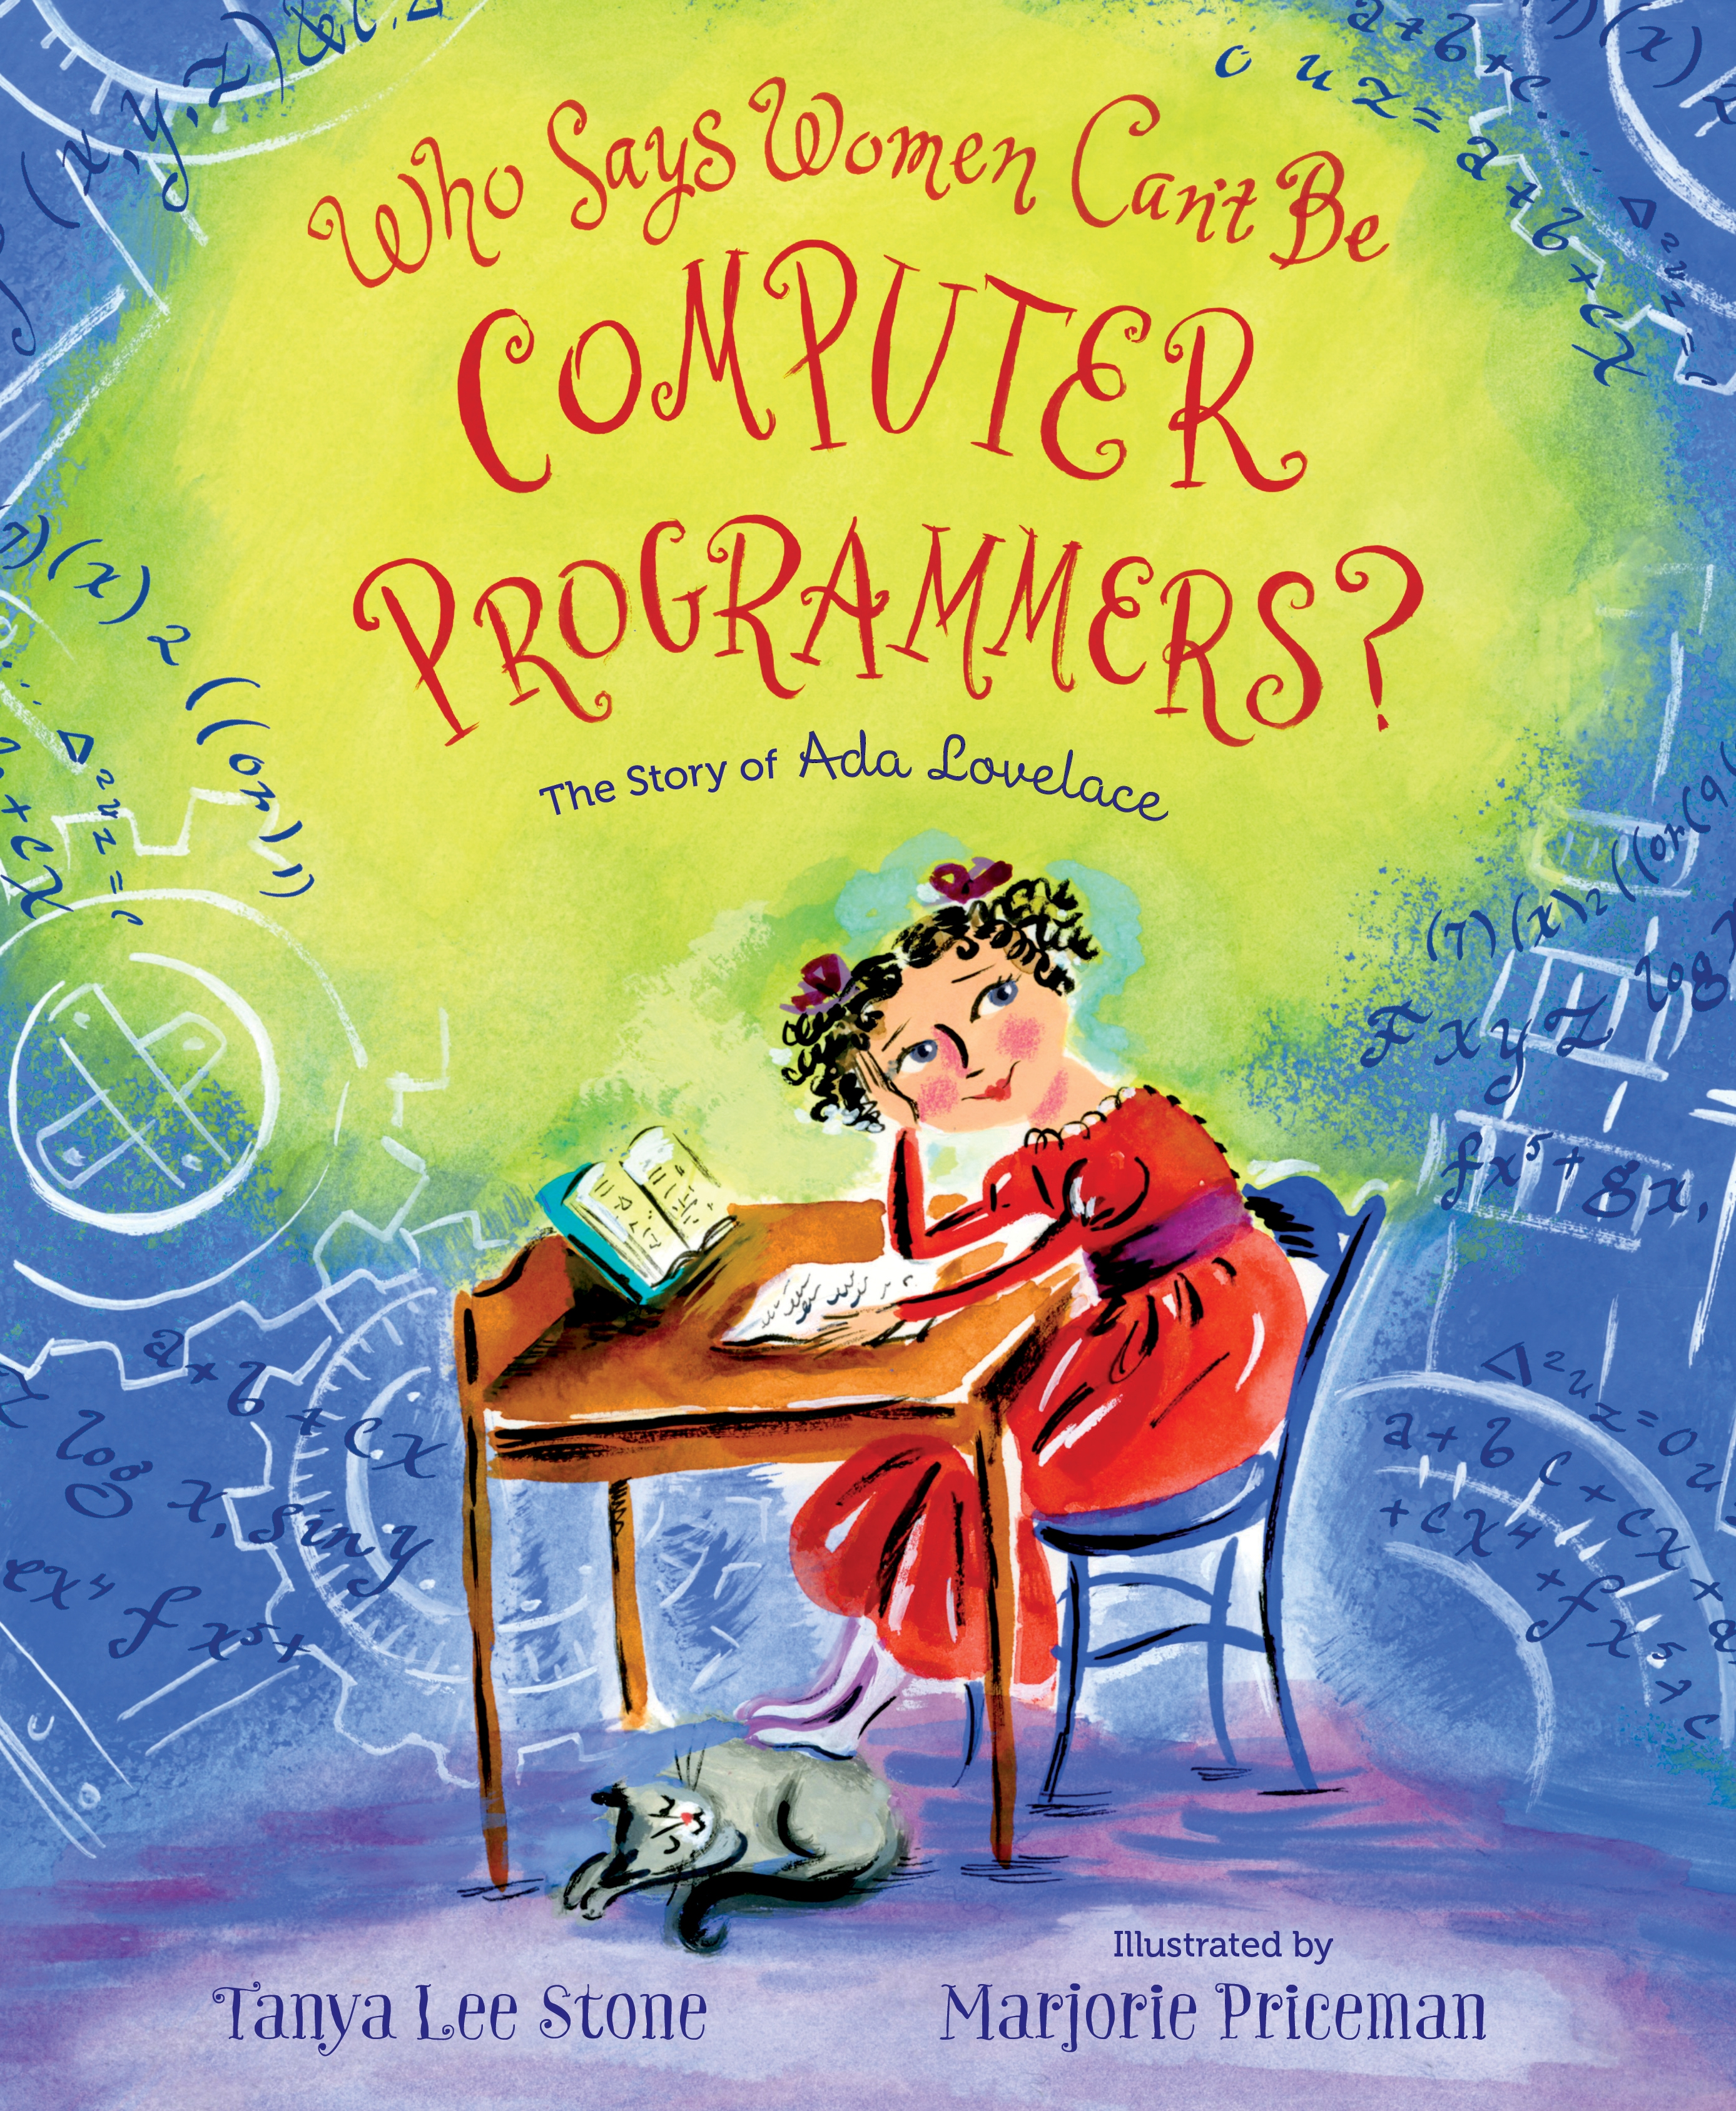 The Essence of Ada: The Story Behind a Picture Book Biography of Ada Lovelace